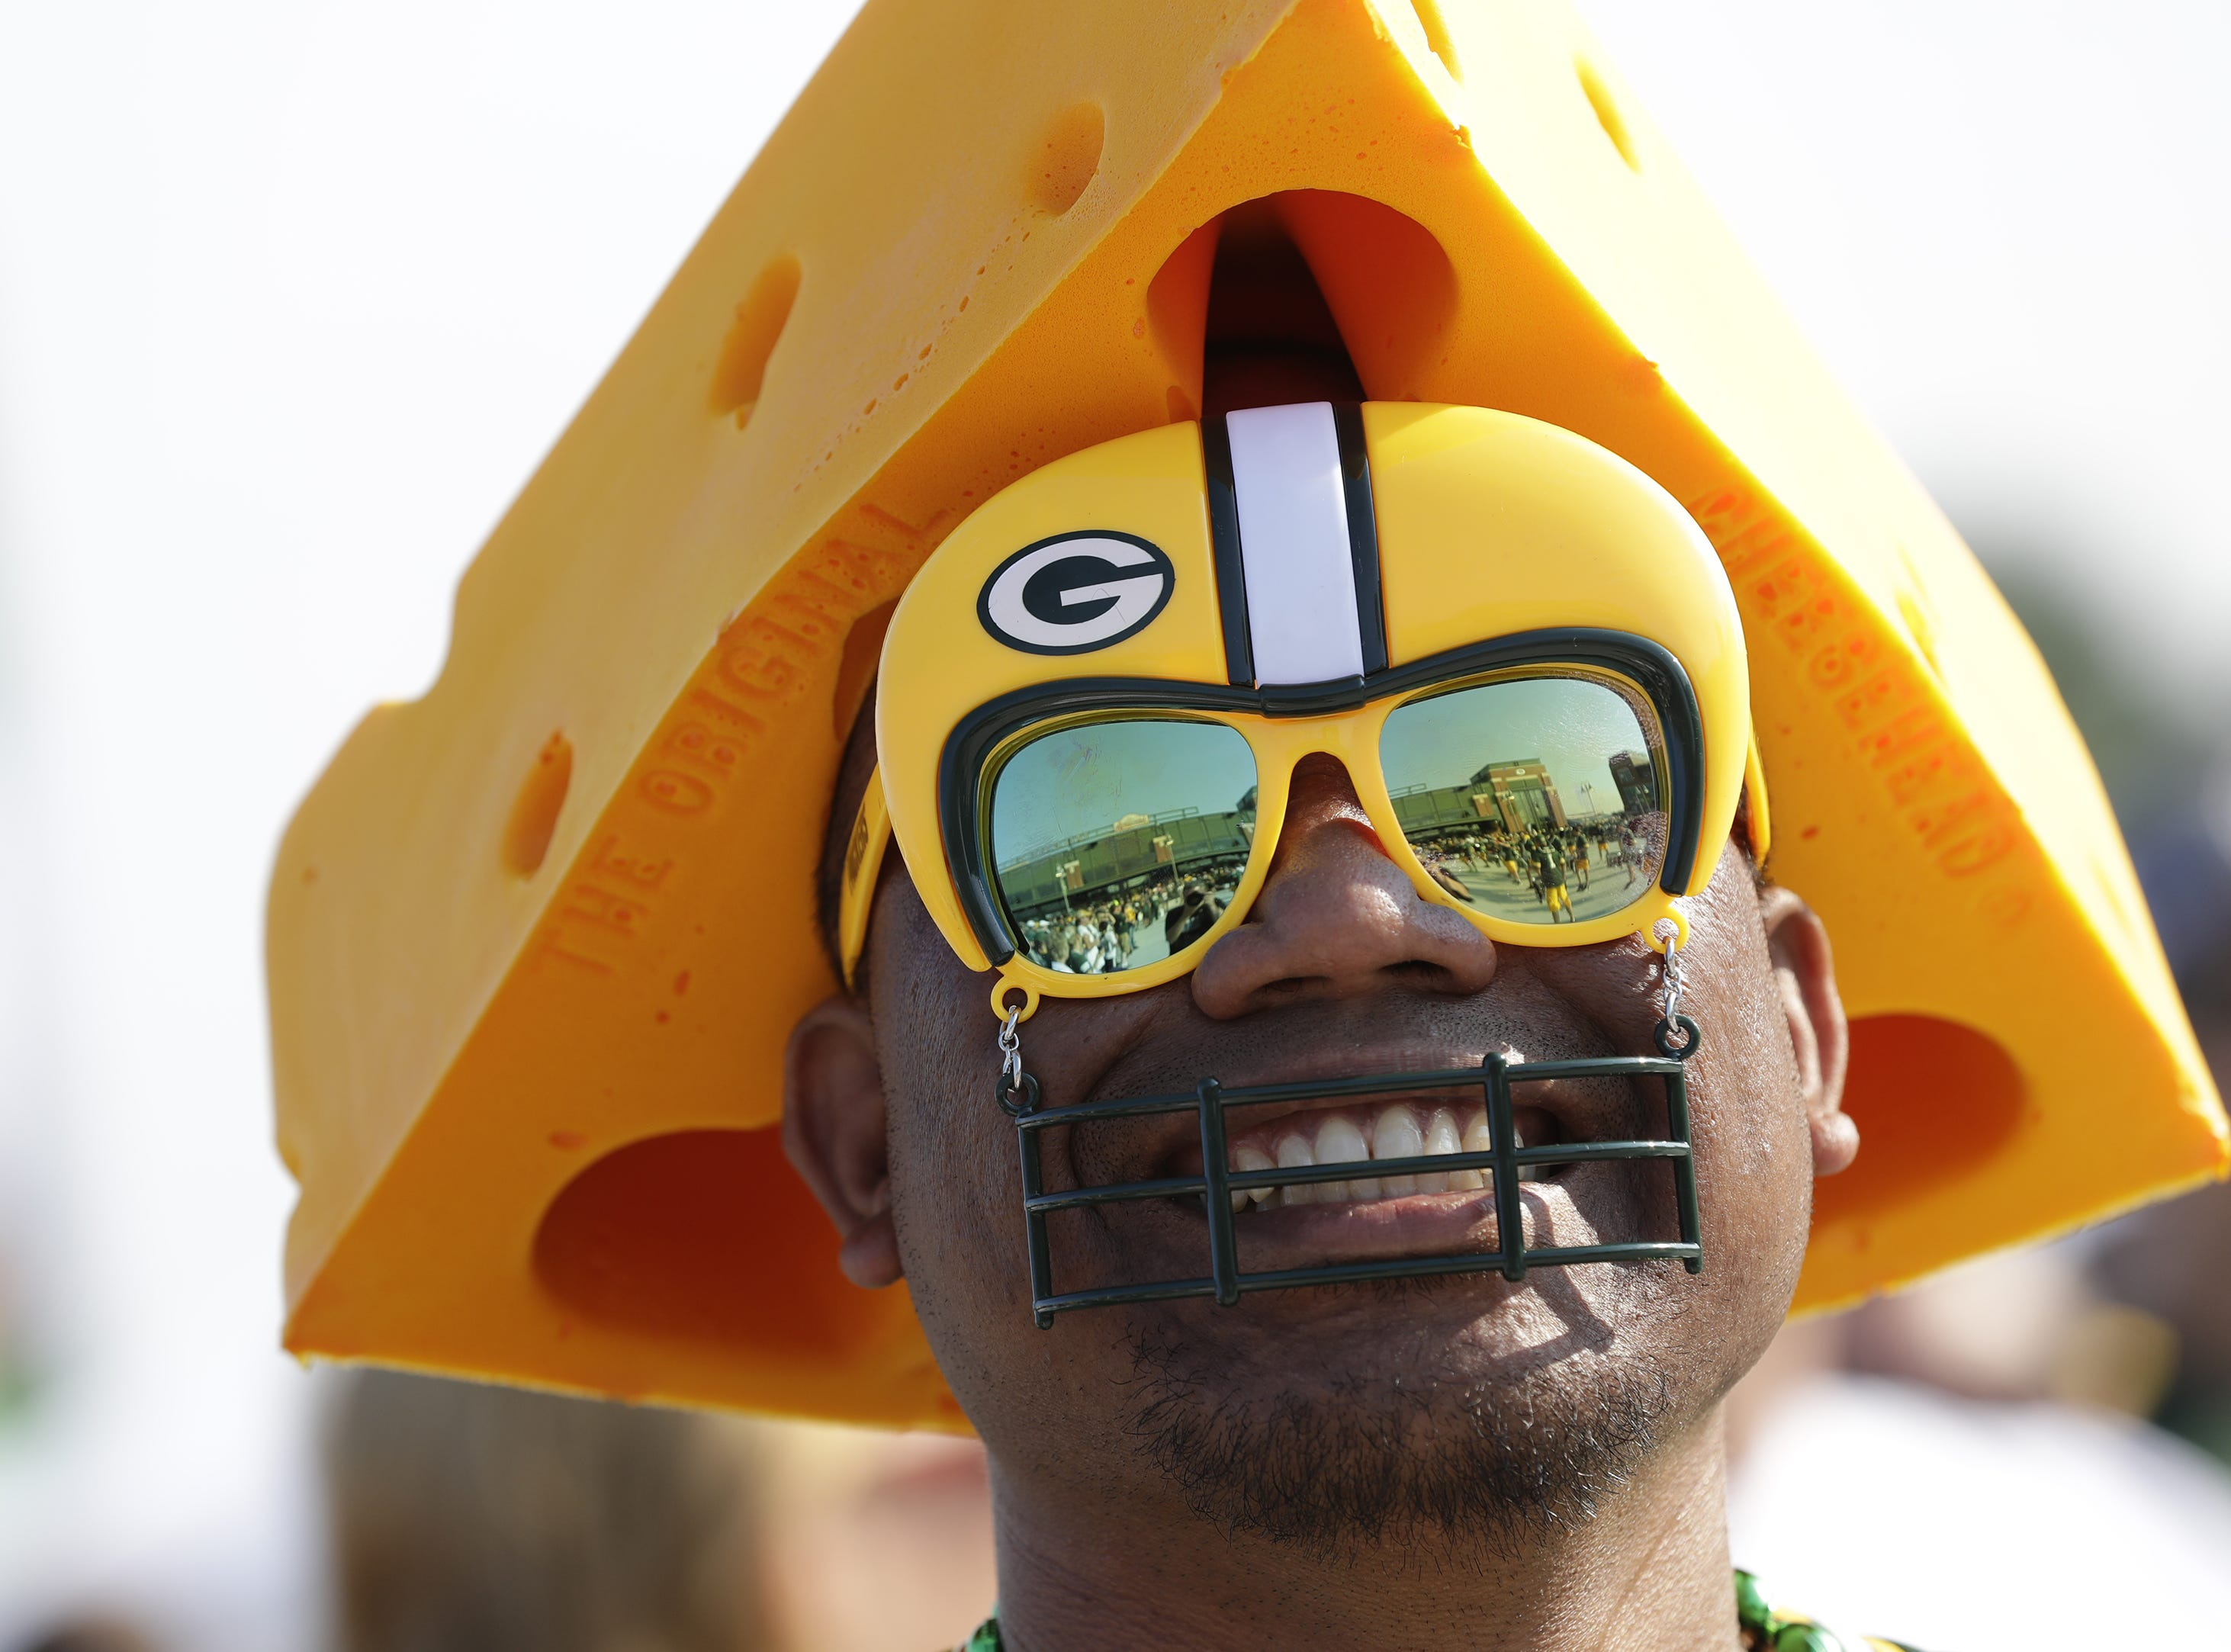 Lambeau Field is reflected in the glasses of Concord Bautista of San Diego as he listens to the Tundra Line perform prior to the Green Bay Packers playing against the Tennessee Titans Thursday, August 9, 2018, at Lambeau Field in Green Bay, Wis.  USA TODAY NETWORK-Wisconsin